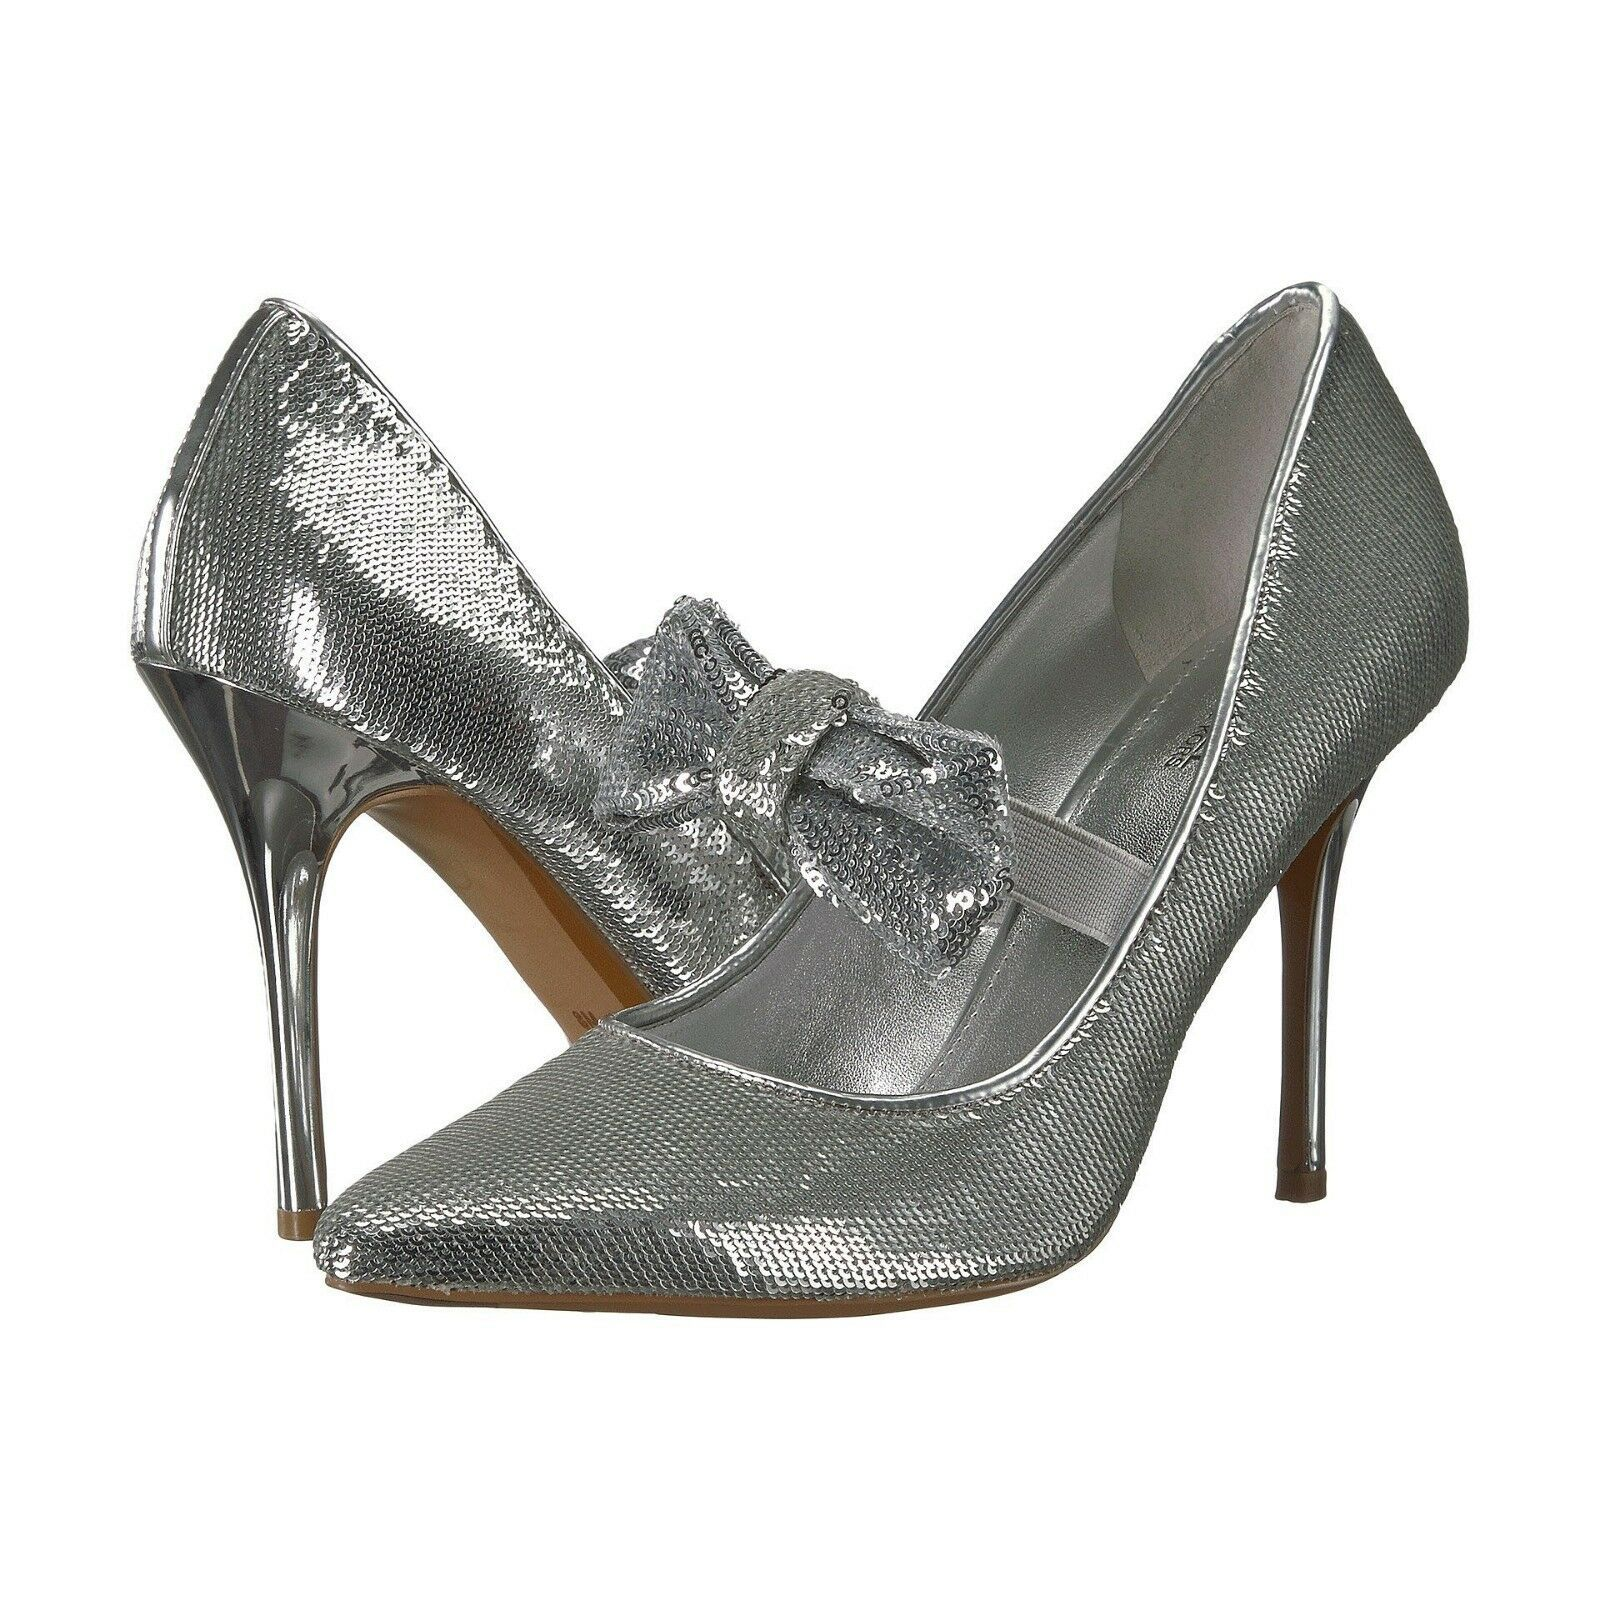 Primary image for Michael Kors Silver Sequin Mary Jane Bow Paris High Heel Pumps 9 NIB